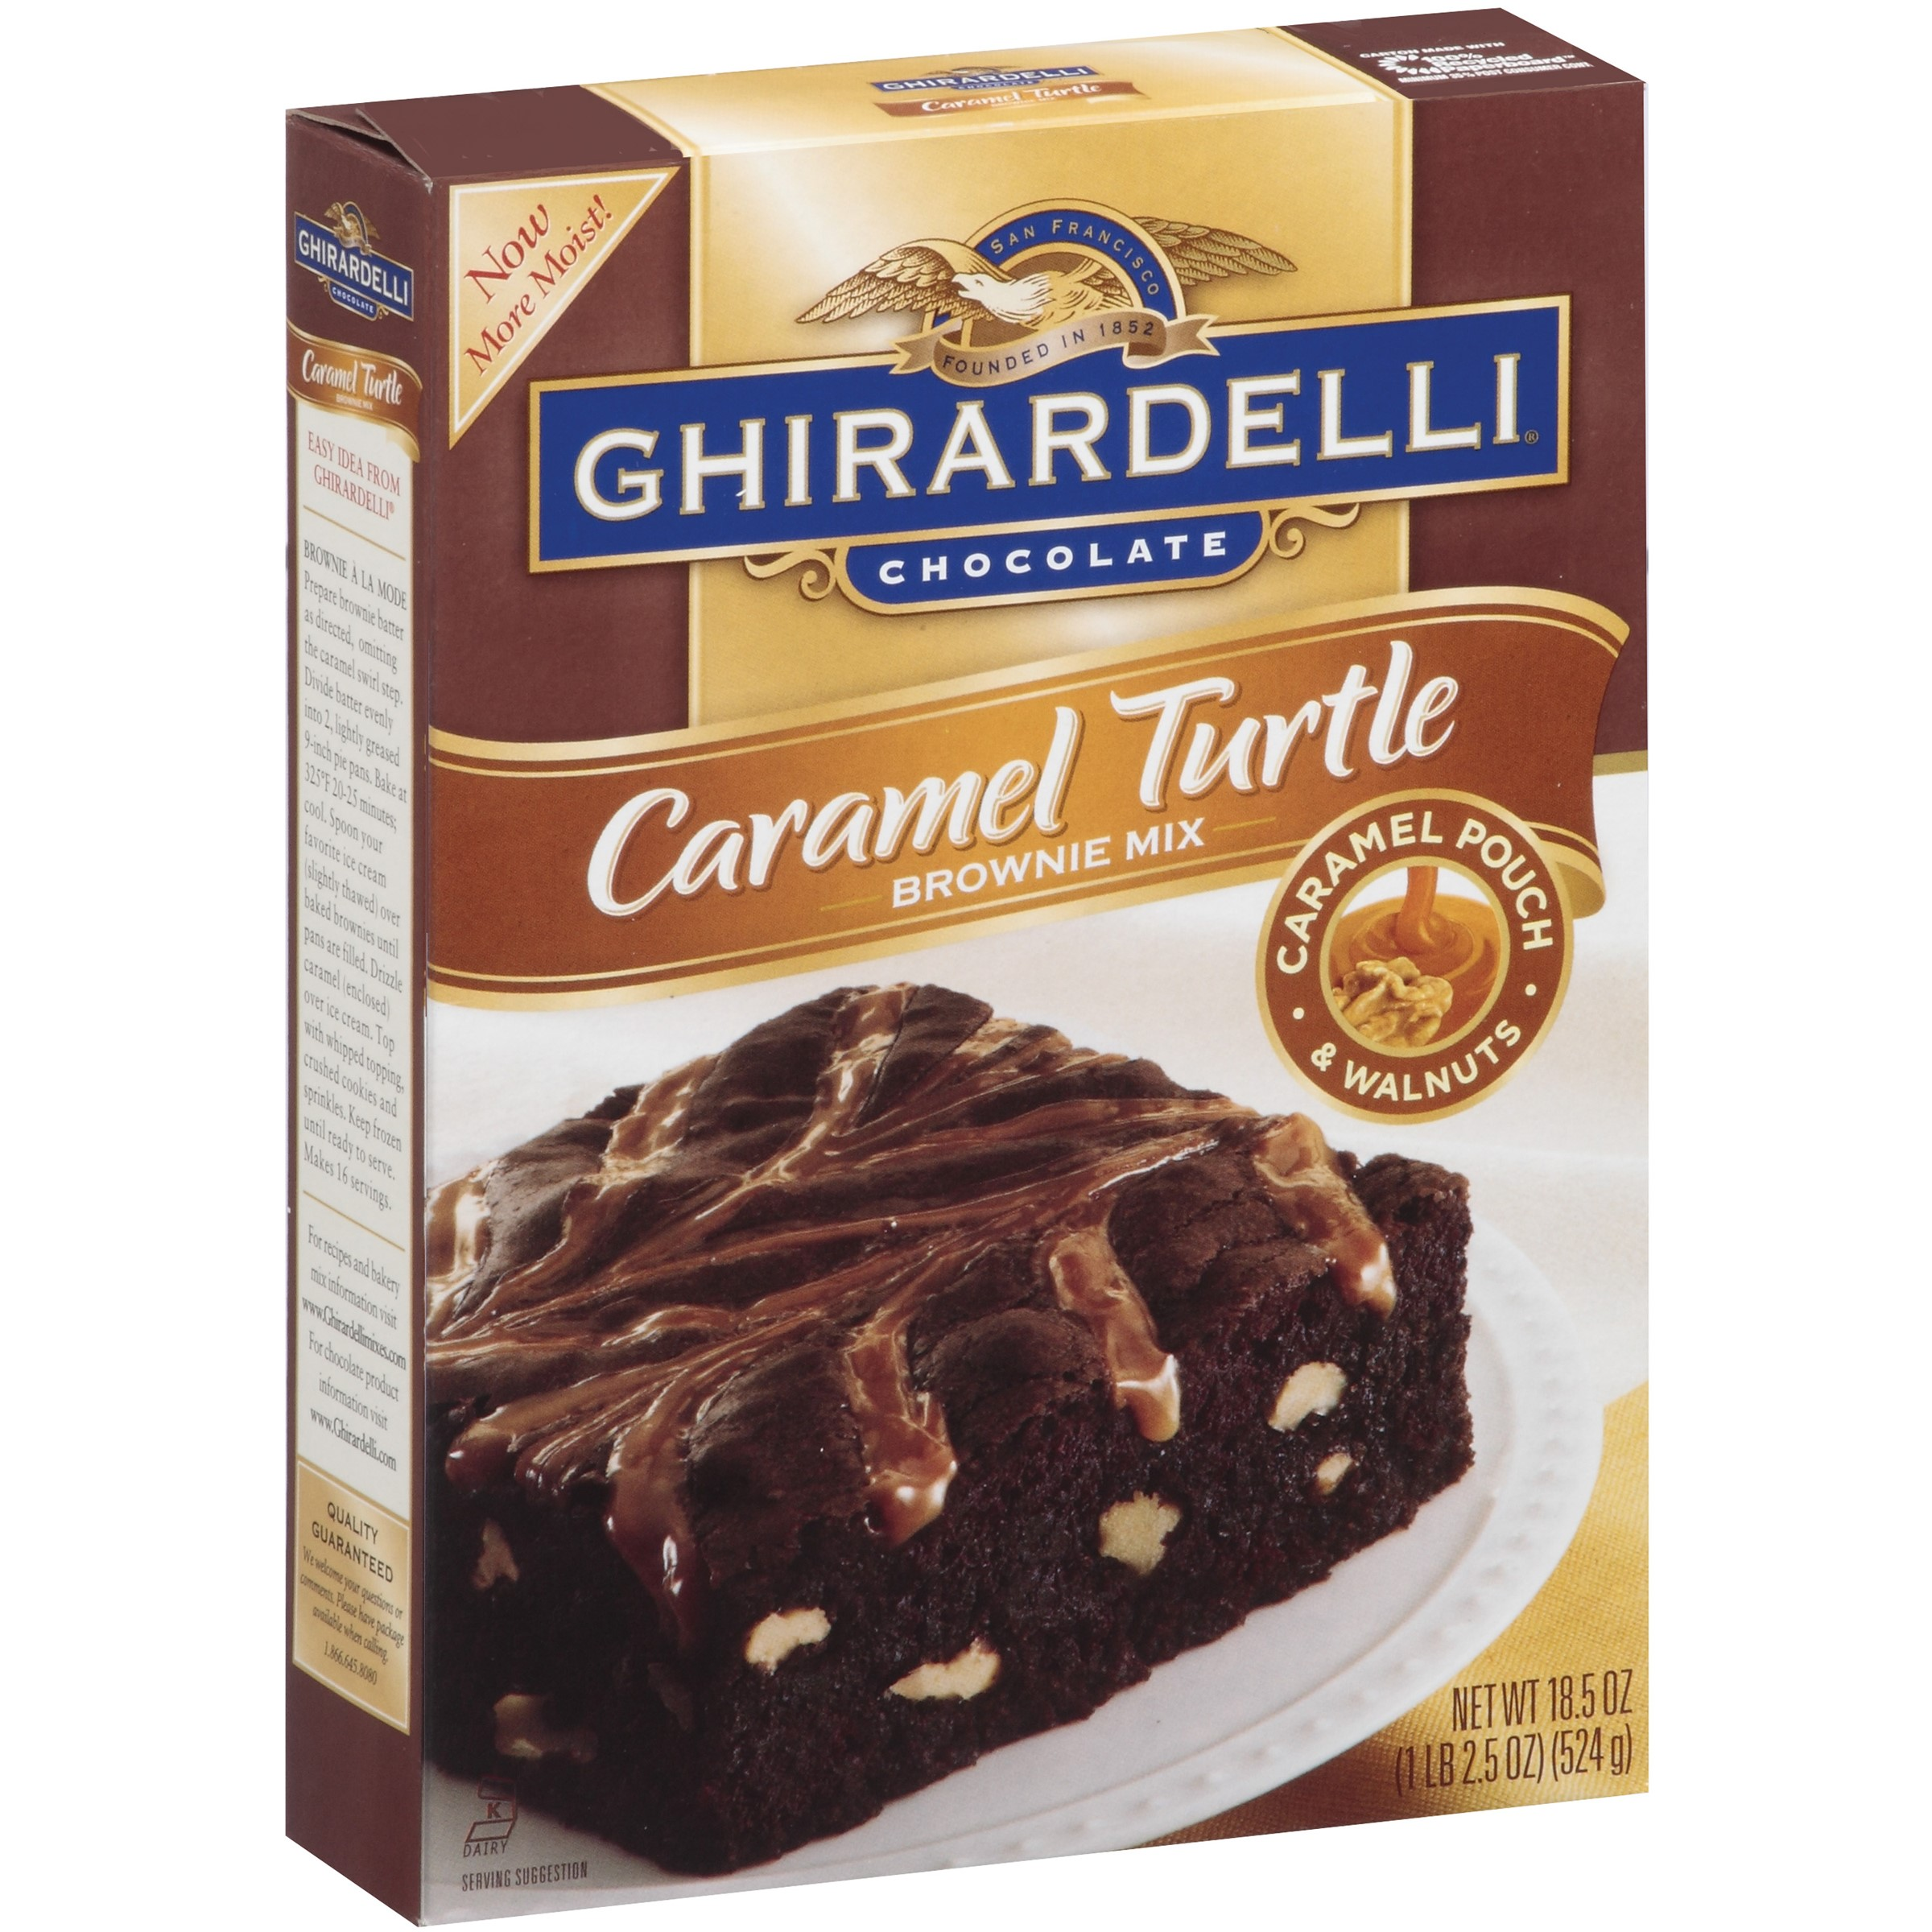 Ghirardelli Chocolate Caramel Turtle Brownie Mix, 18.5 Ounce